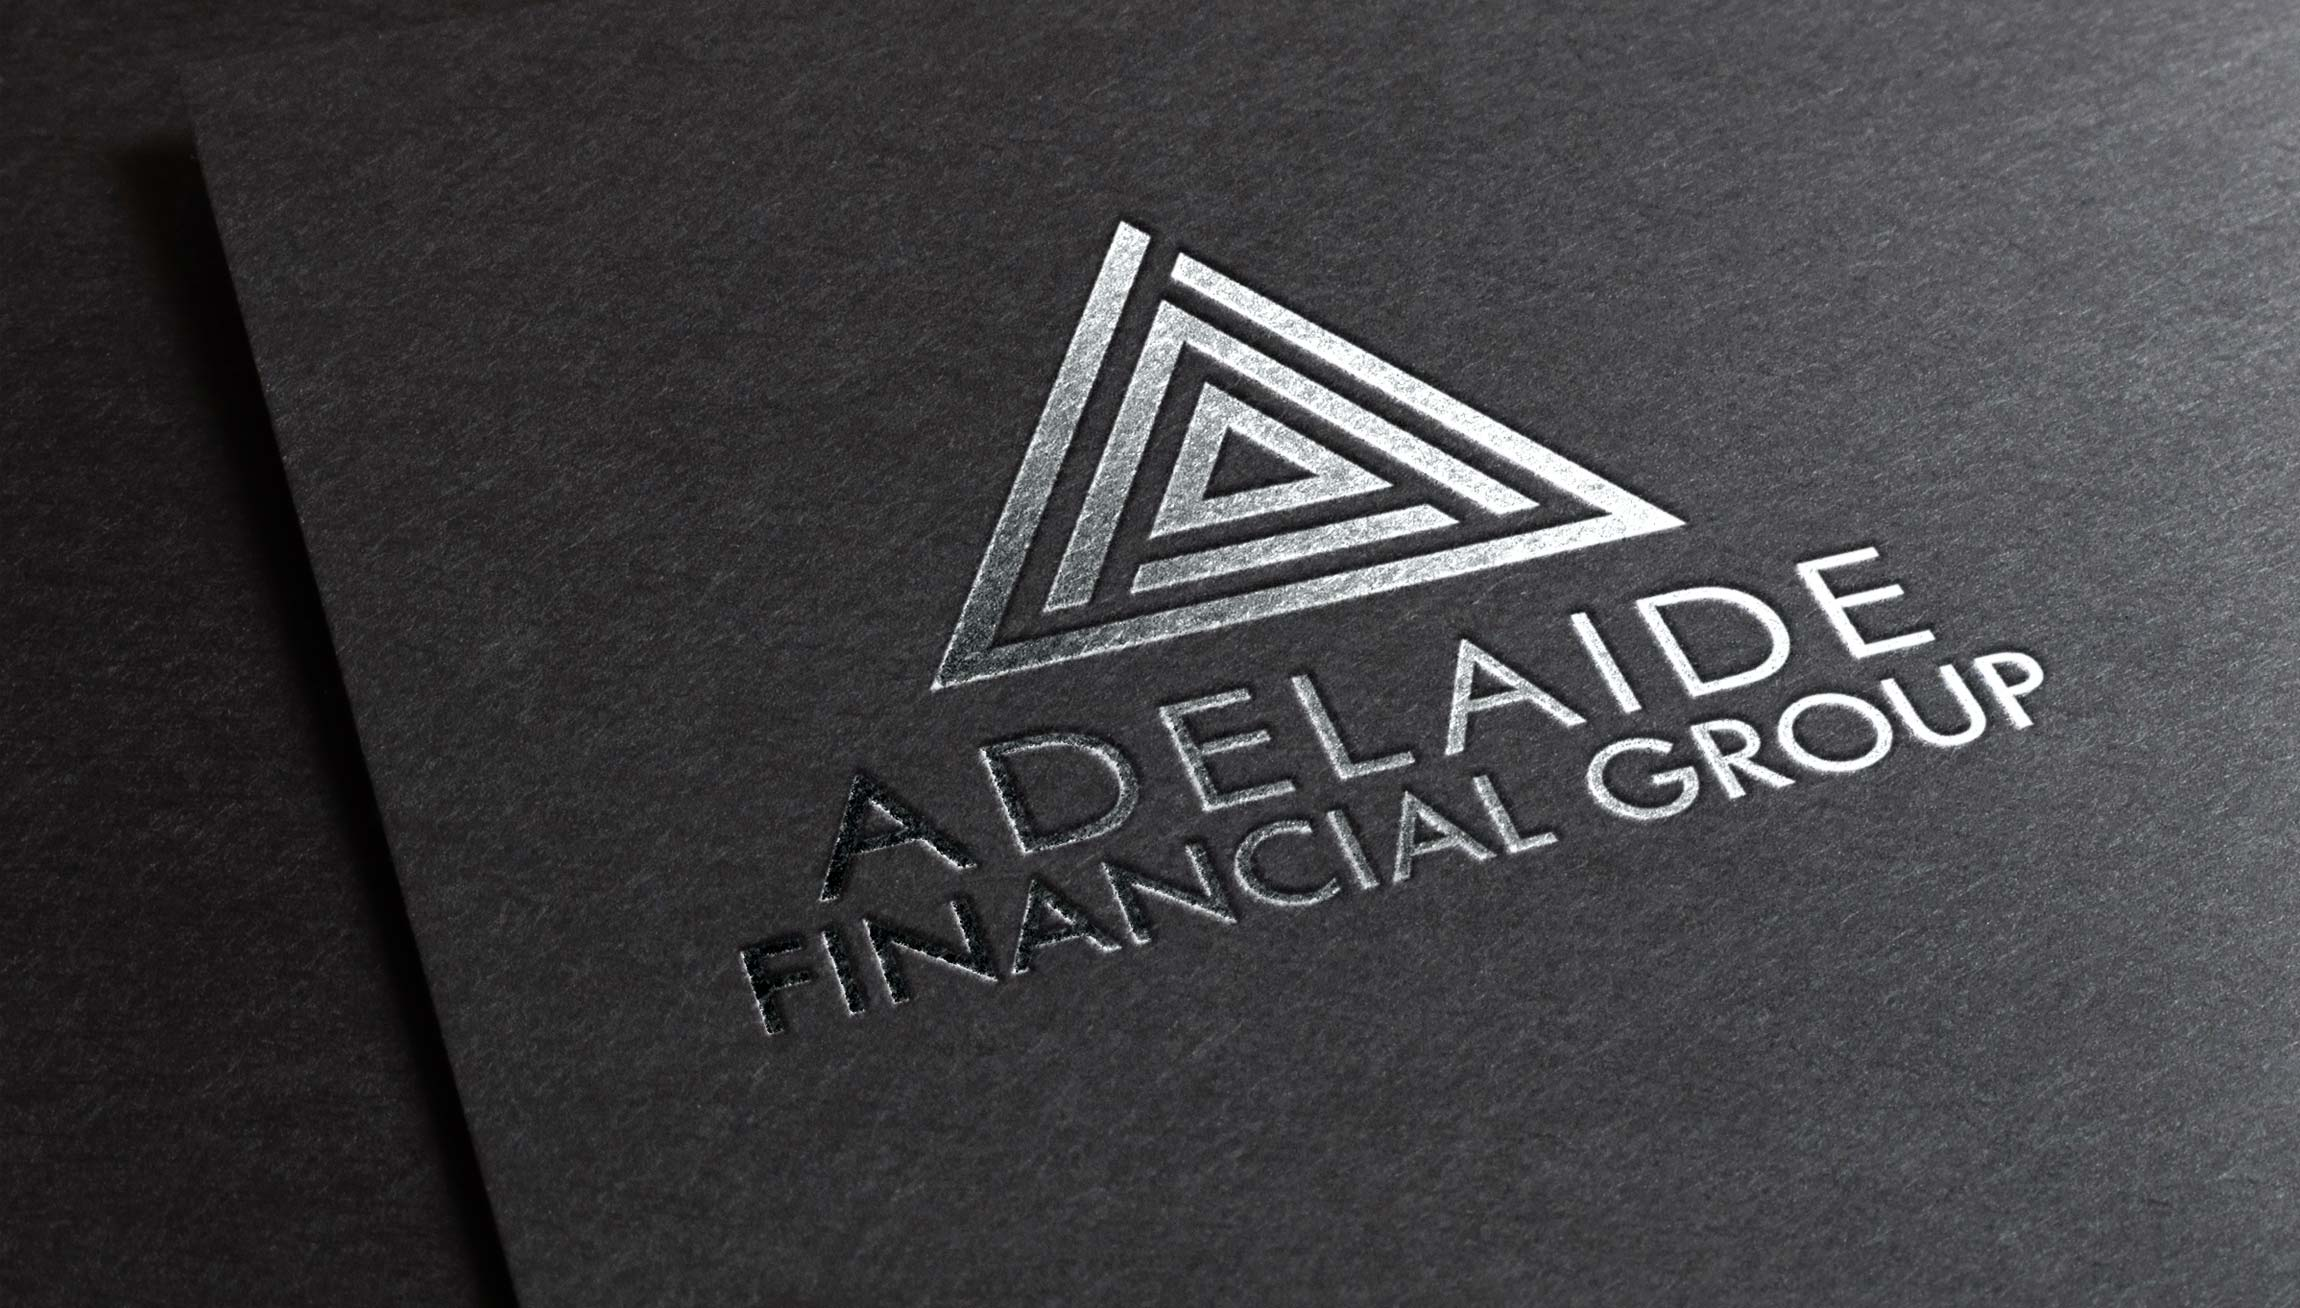 Logo & Branding - Logo design mockup on a black card with silver metallic printing for Adelaide Financial Group